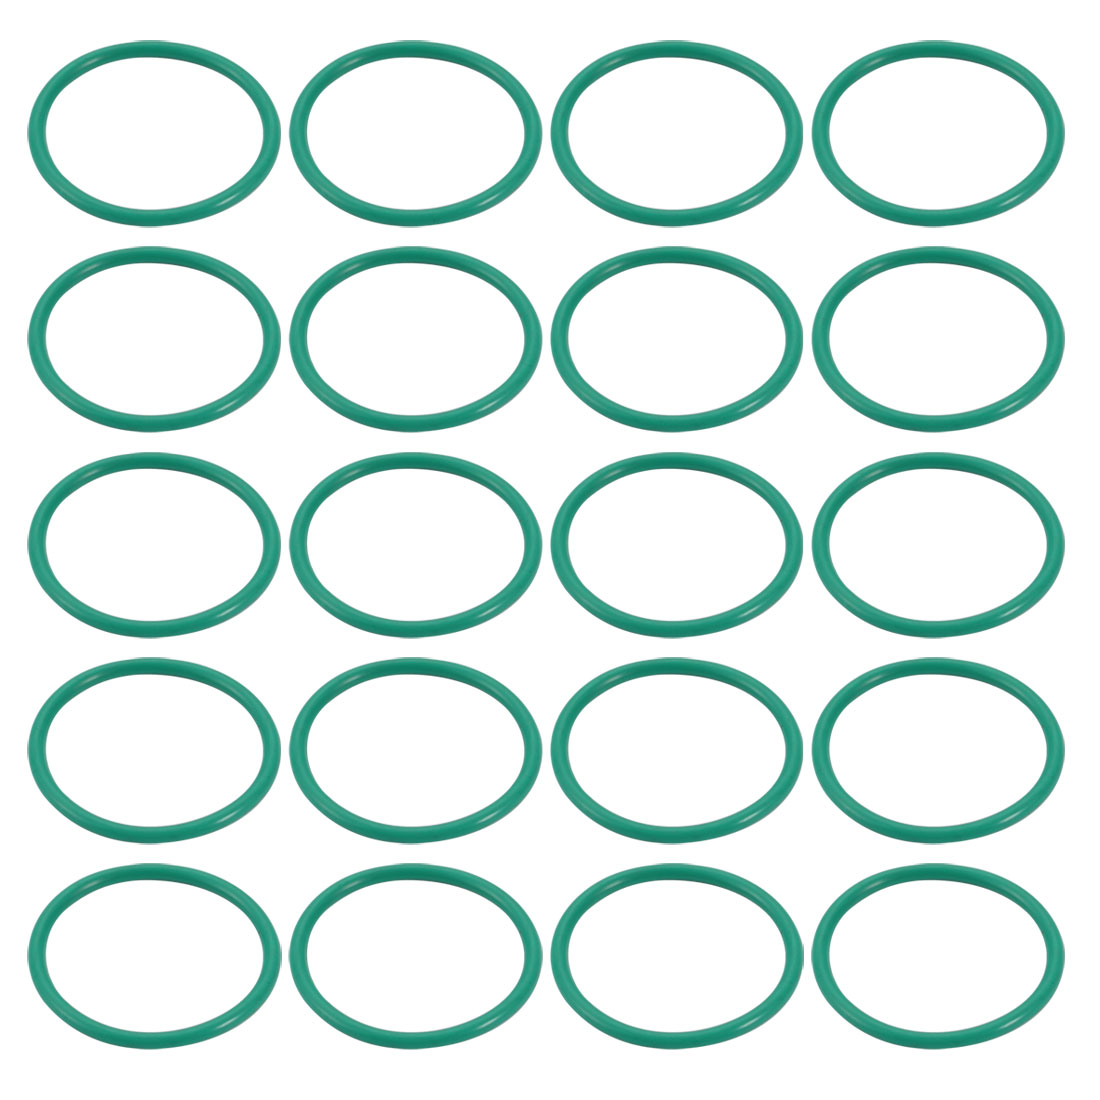 20pcs 26mm x 1.9mm Size Mechanical Rubber O Ring Oil Seal Gaskets Green